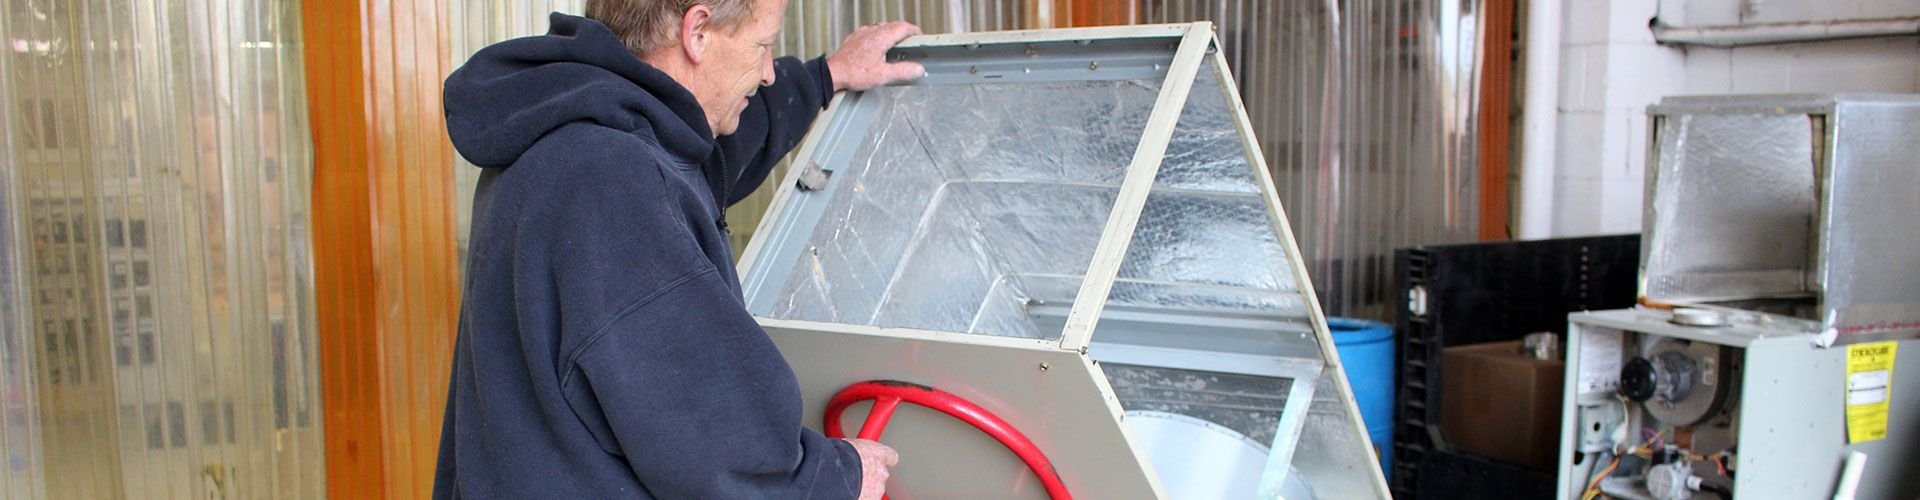 Bolls Heating and Cooling is a service oriented business